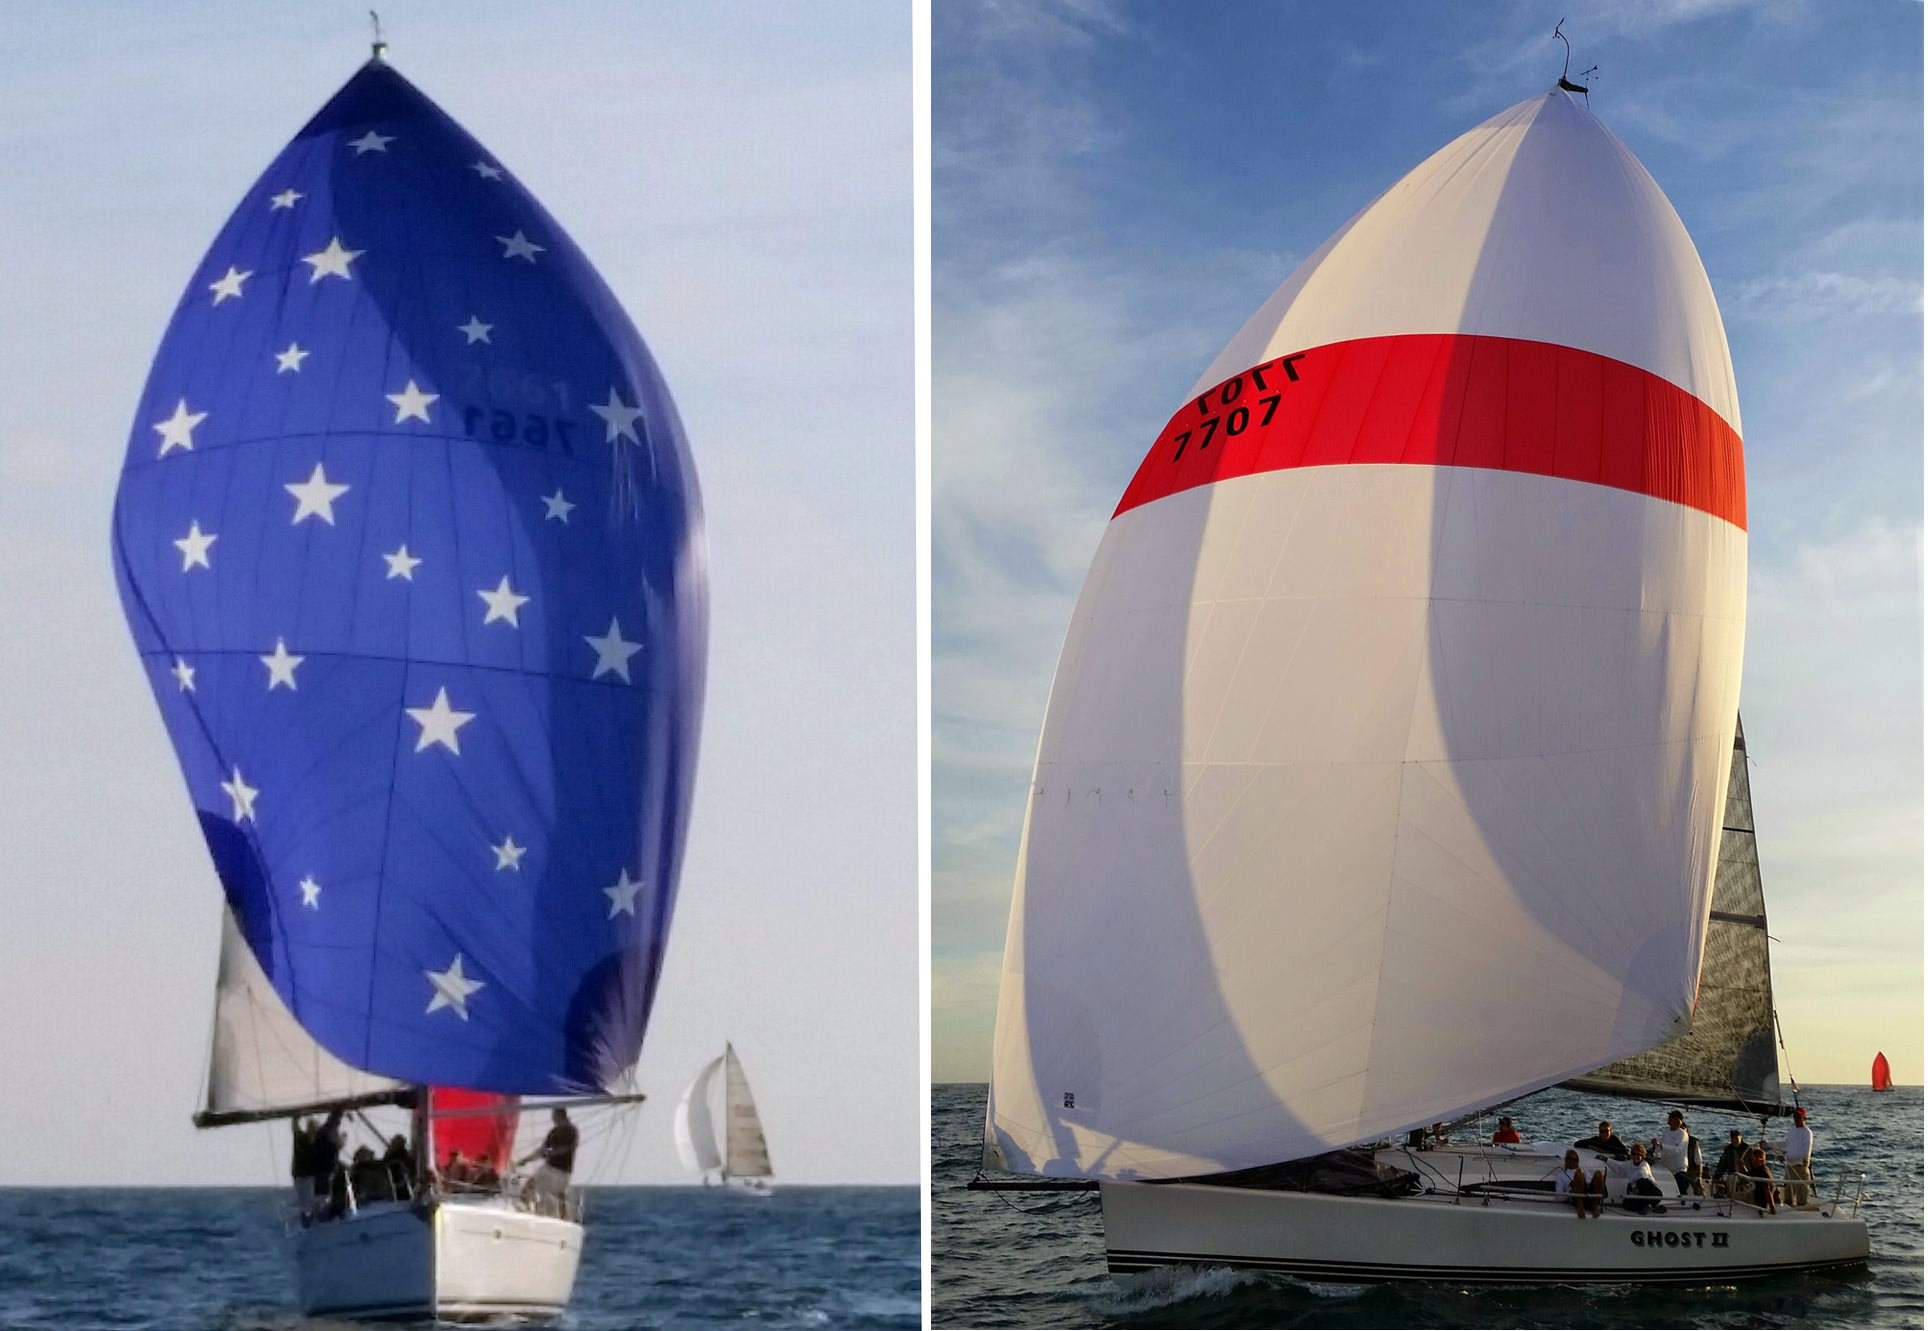 Left :Whitney Green's Jeanneau 43 PACIFIC finished 1st in class in the 2016 Pacific Cup with a complete UK Sailmakers inventory.  Right : Al Berg's Farr 395 GHOST II finished 1st in class in the 2016 Berger Series, also with a complete UK inventory.